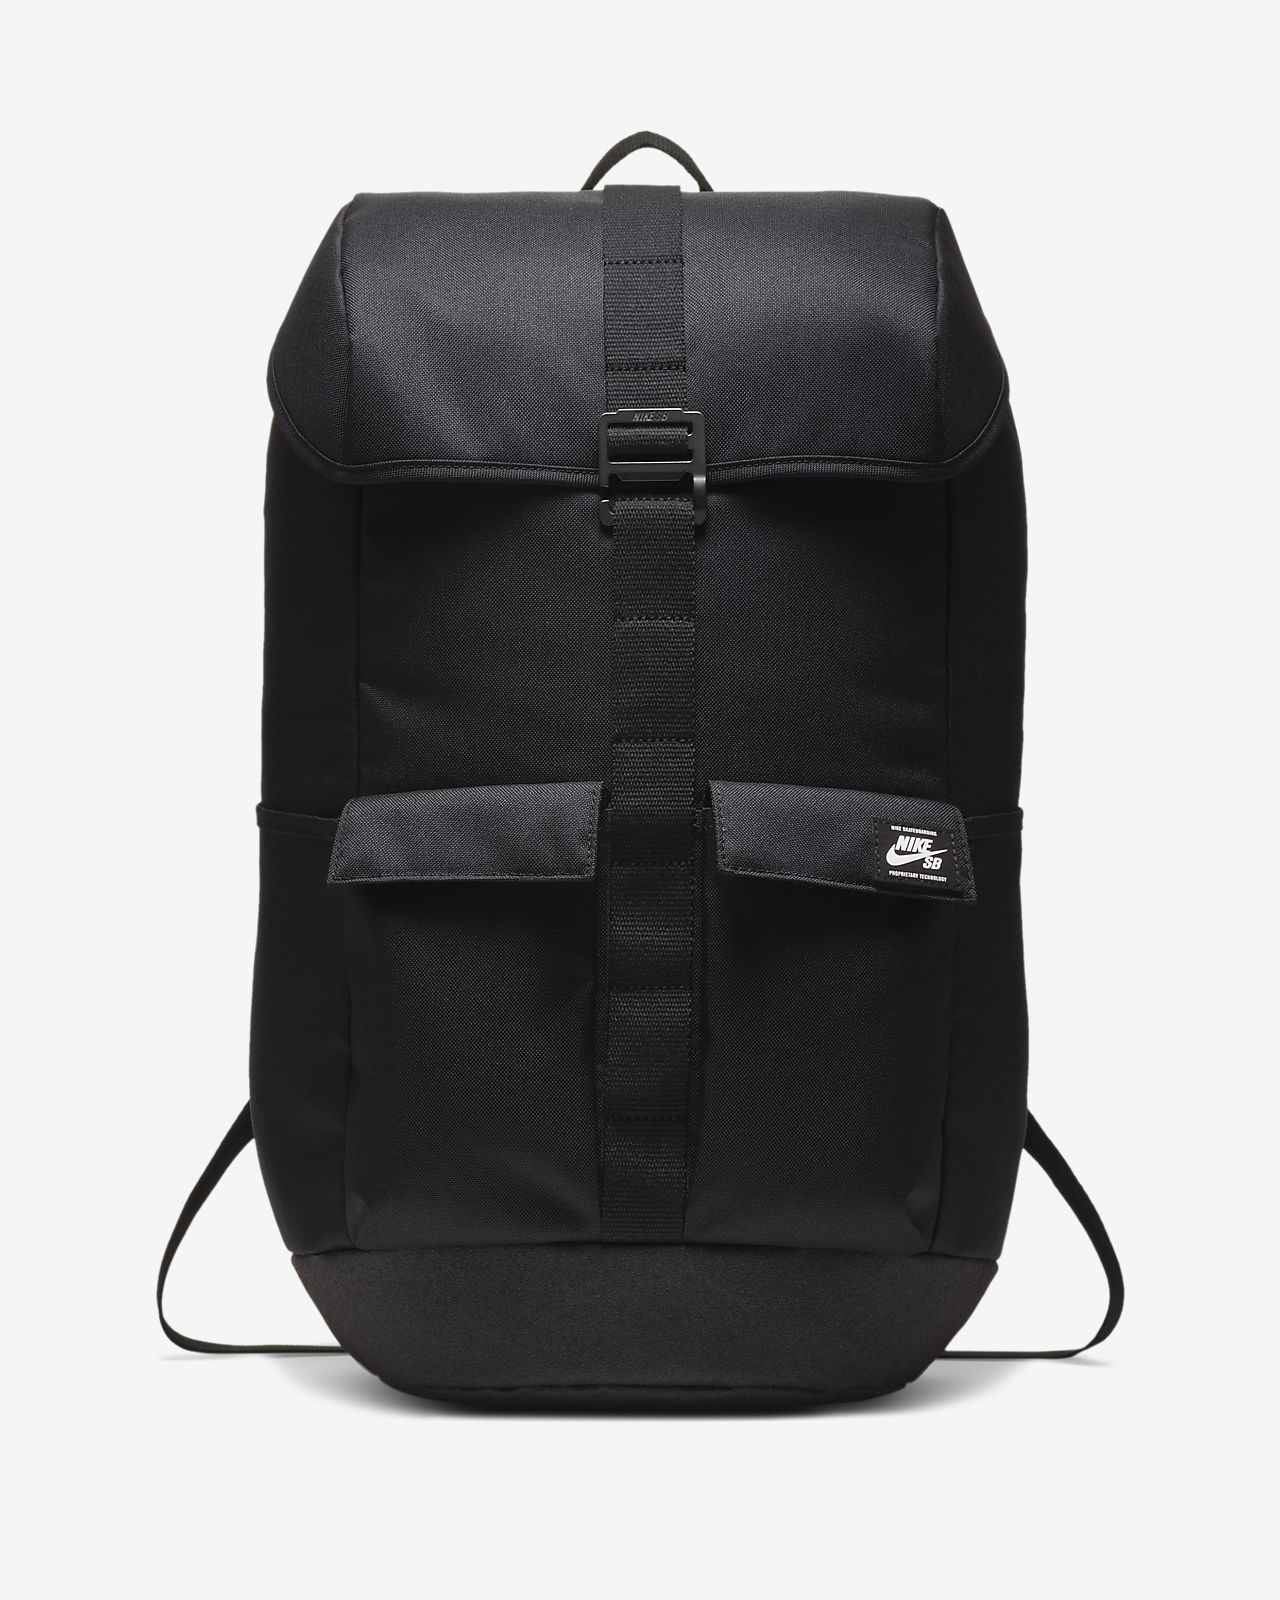 0159d13c35 Low Resolution Nike SB Stockwell Backpack Nike SB Stockwell Backpack